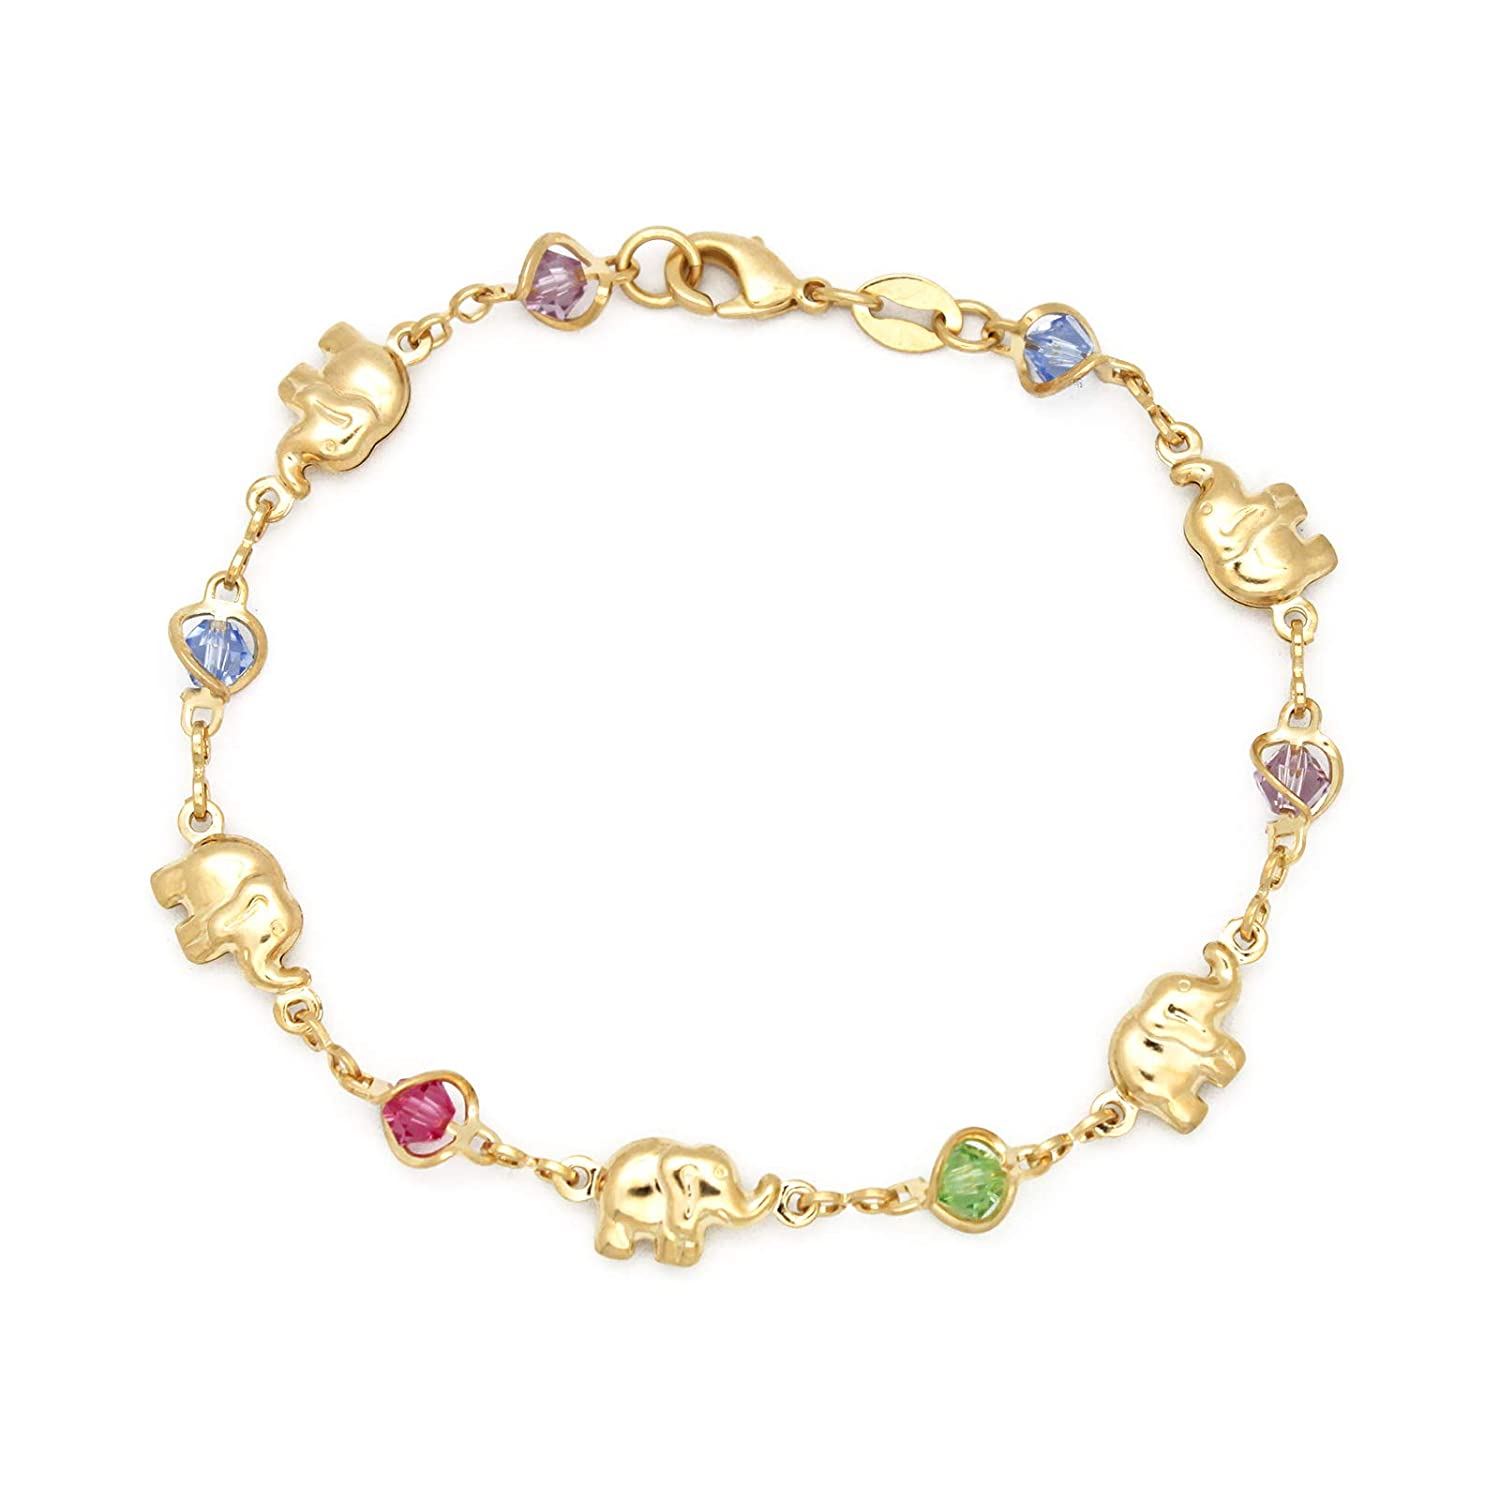 JEWELRY PARADISE Elephant & Multi-Color Birthstone Charms Bracelet Baby Girl Toddler Child Teen Petite Woman 14kt Gold Filled Plated Birthday Crystal ...